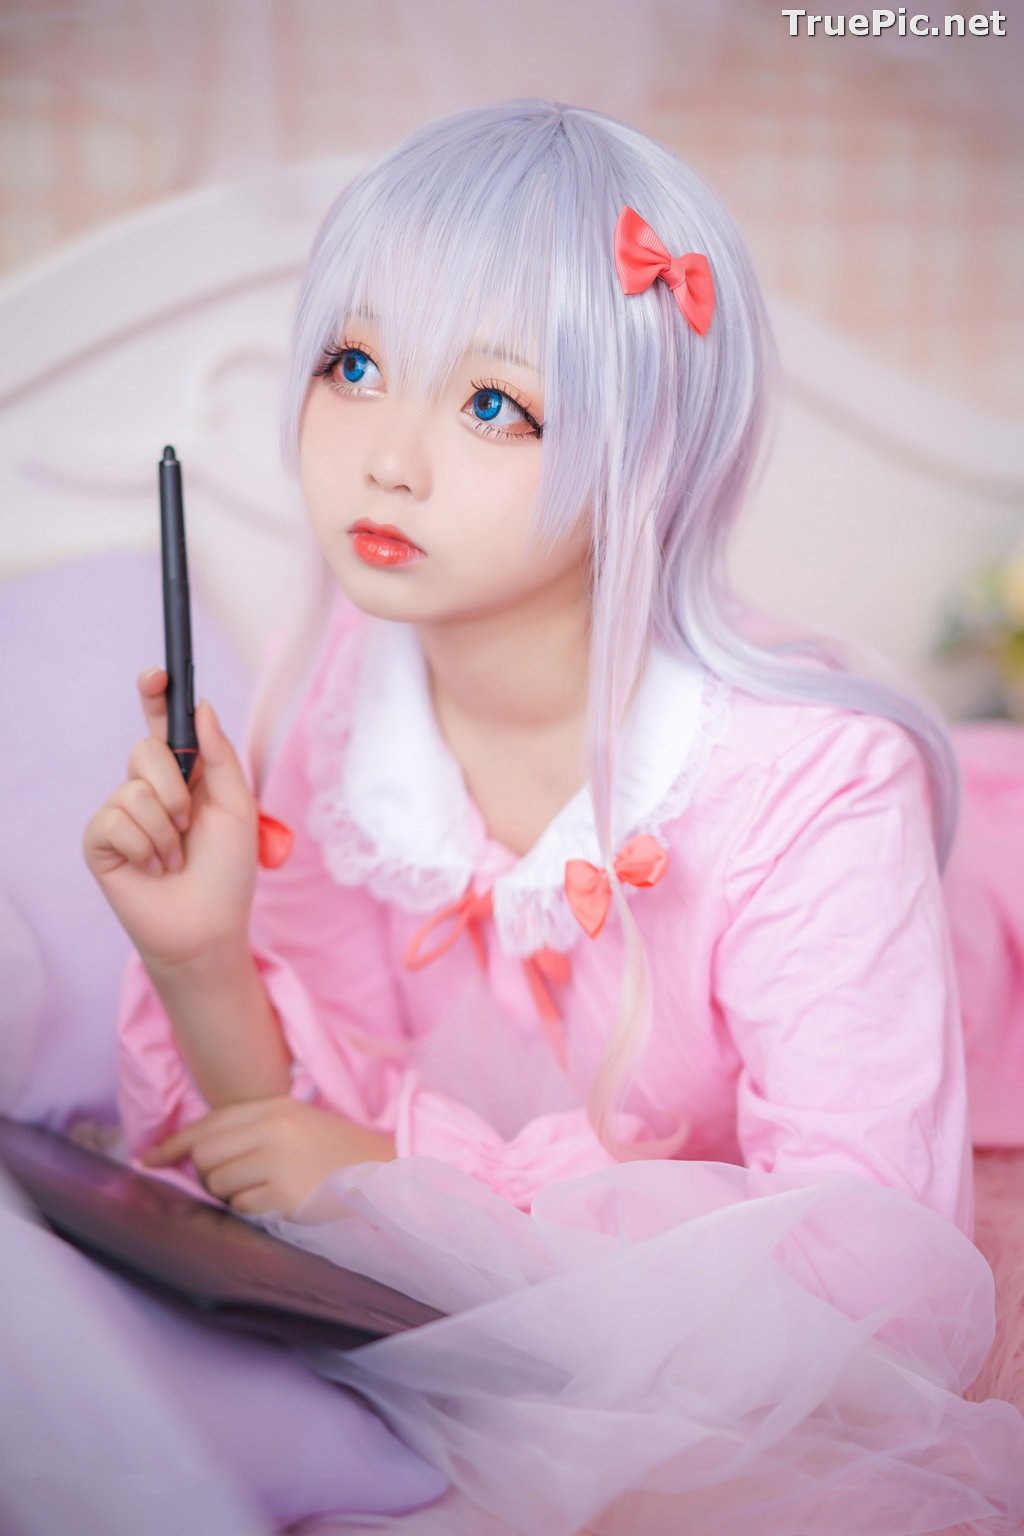 Image [MTCos] 喵糖映画 Vol.048 - Chinese Cute Model - Lovely Pink - TruePic.net - Picture-7